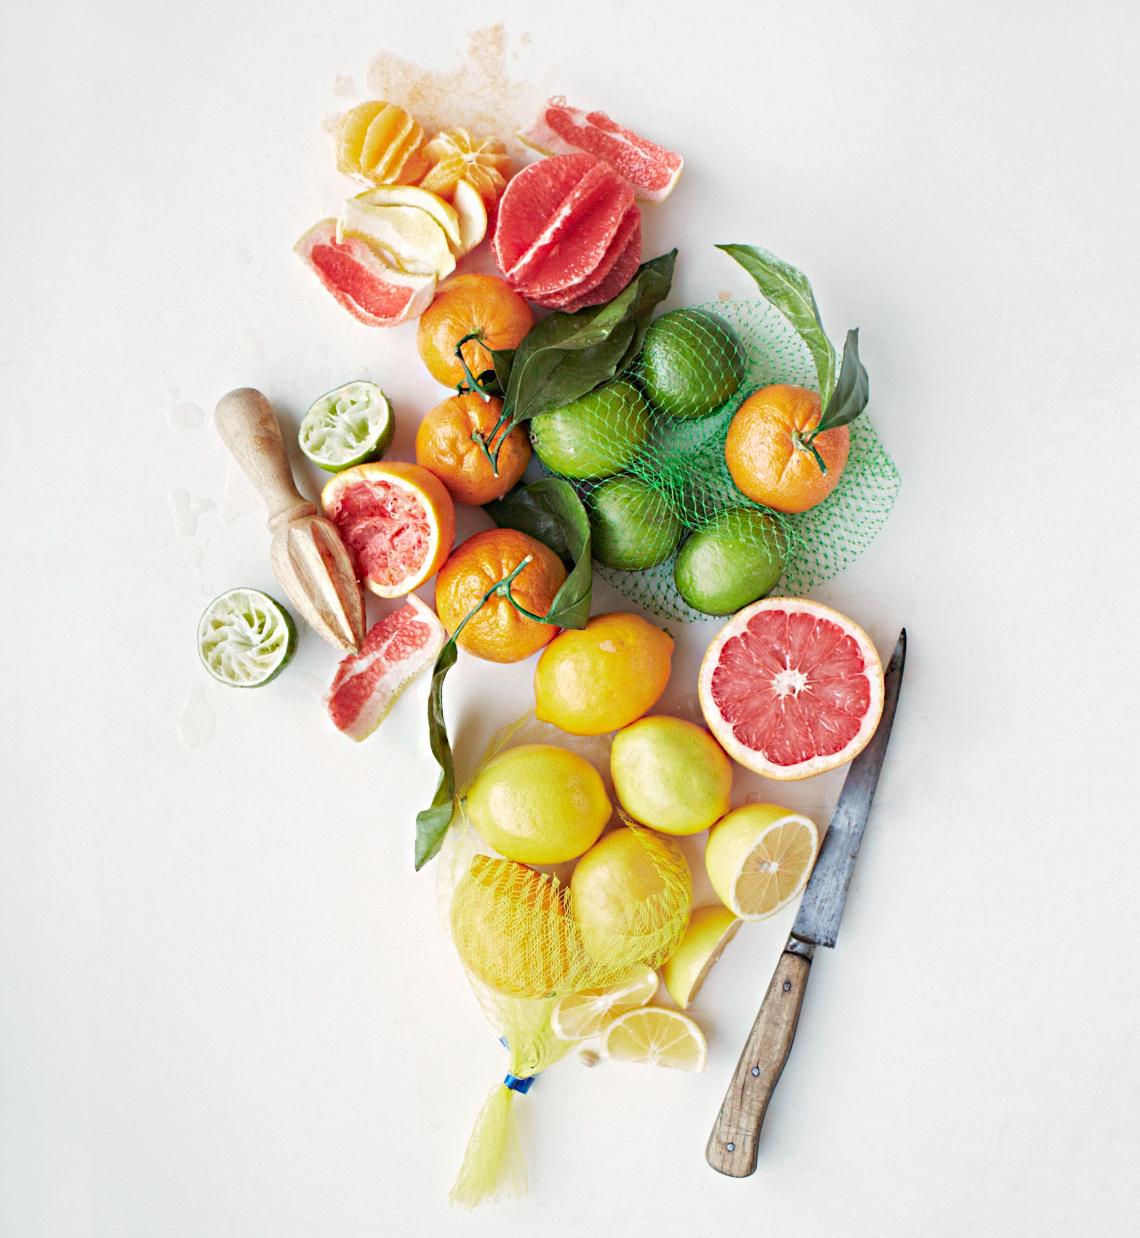 various citrus fruits and knife